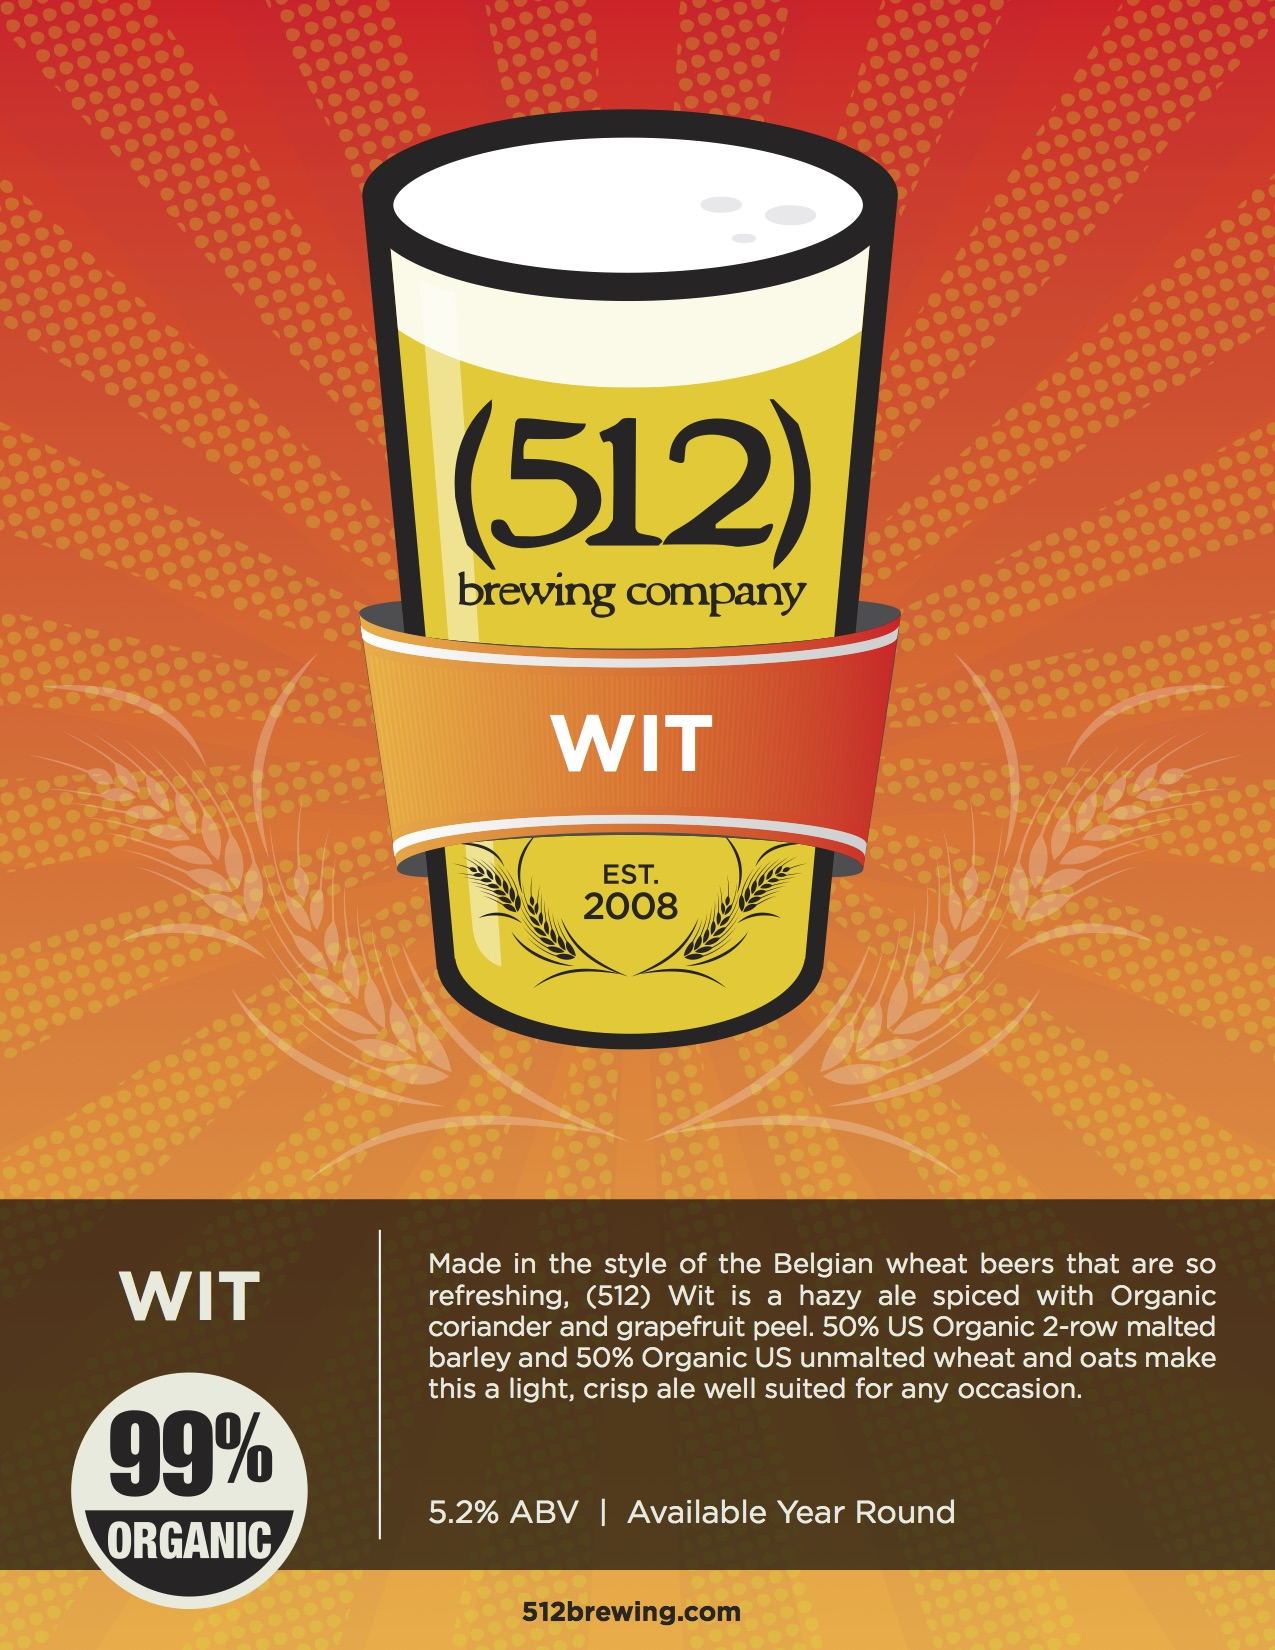 512 Brewing WIT